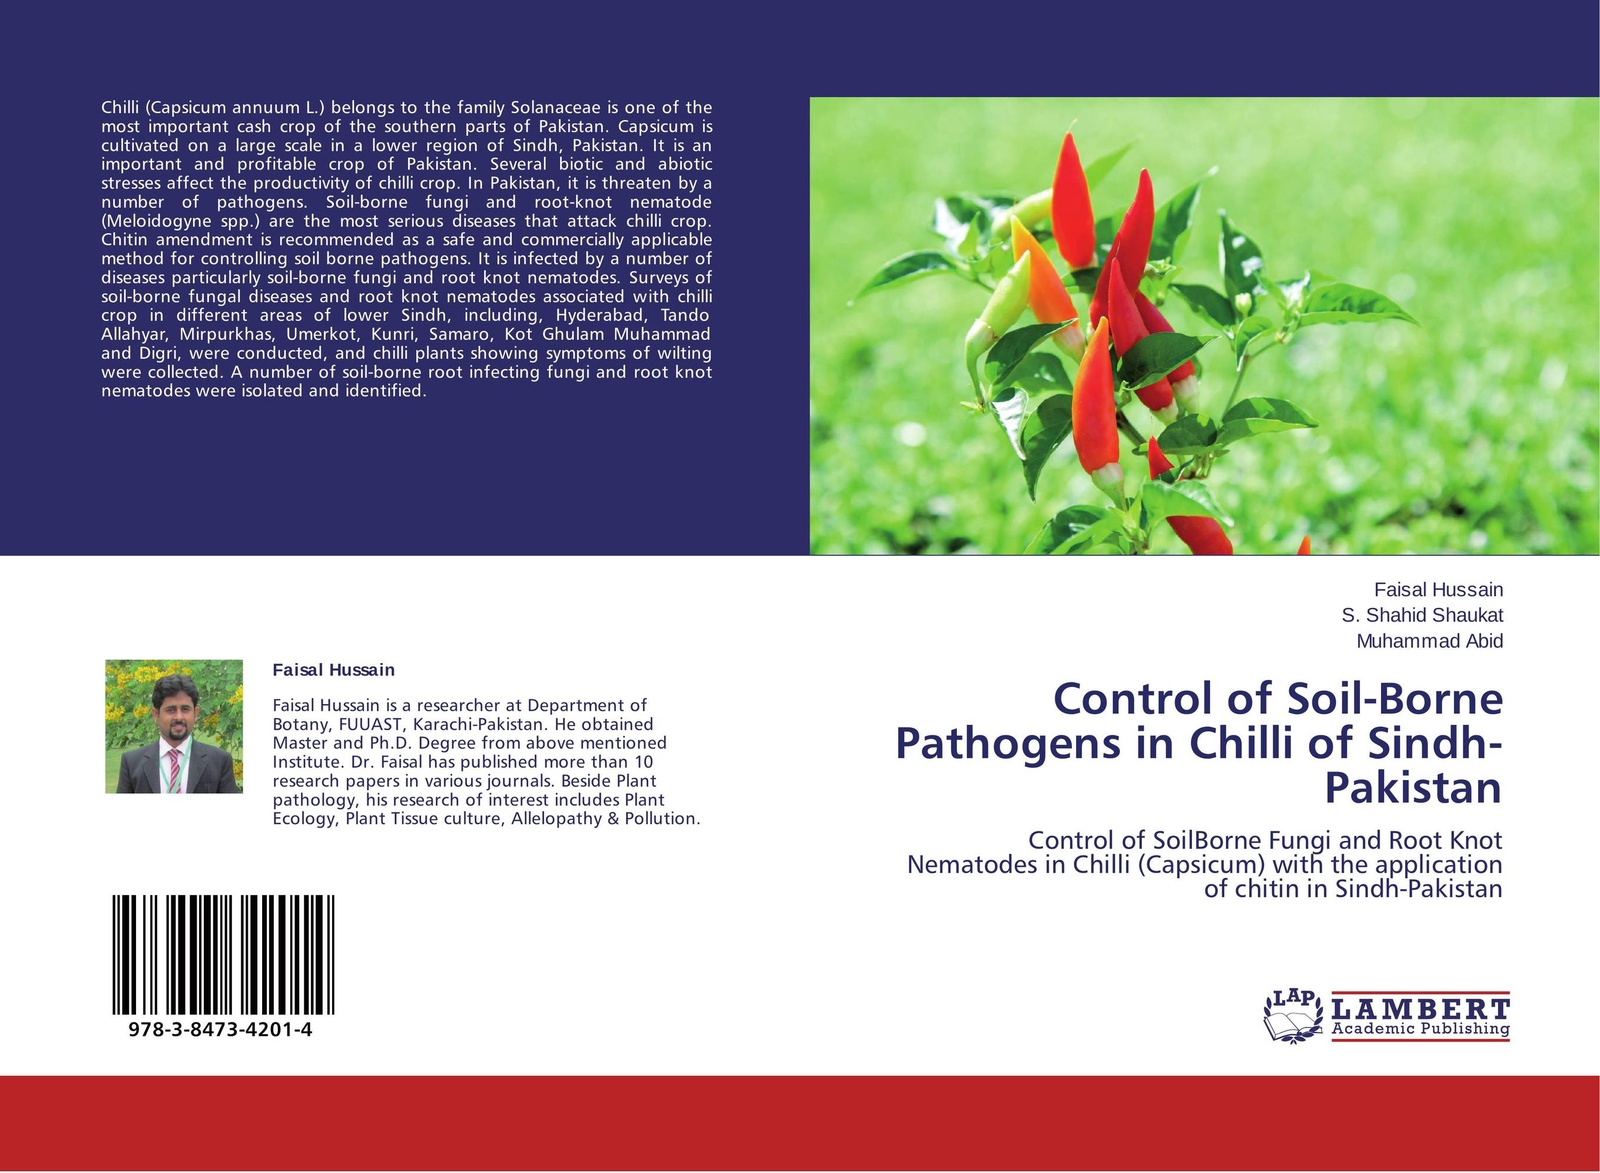 Faisal Hussain,S. Shahid Shaukat and Muhammad Abid Control of Soil-Borne Pathogens in Chilli of Sindh-Pakistan muhammad altaf qureshi universalization of primary education in pakistan